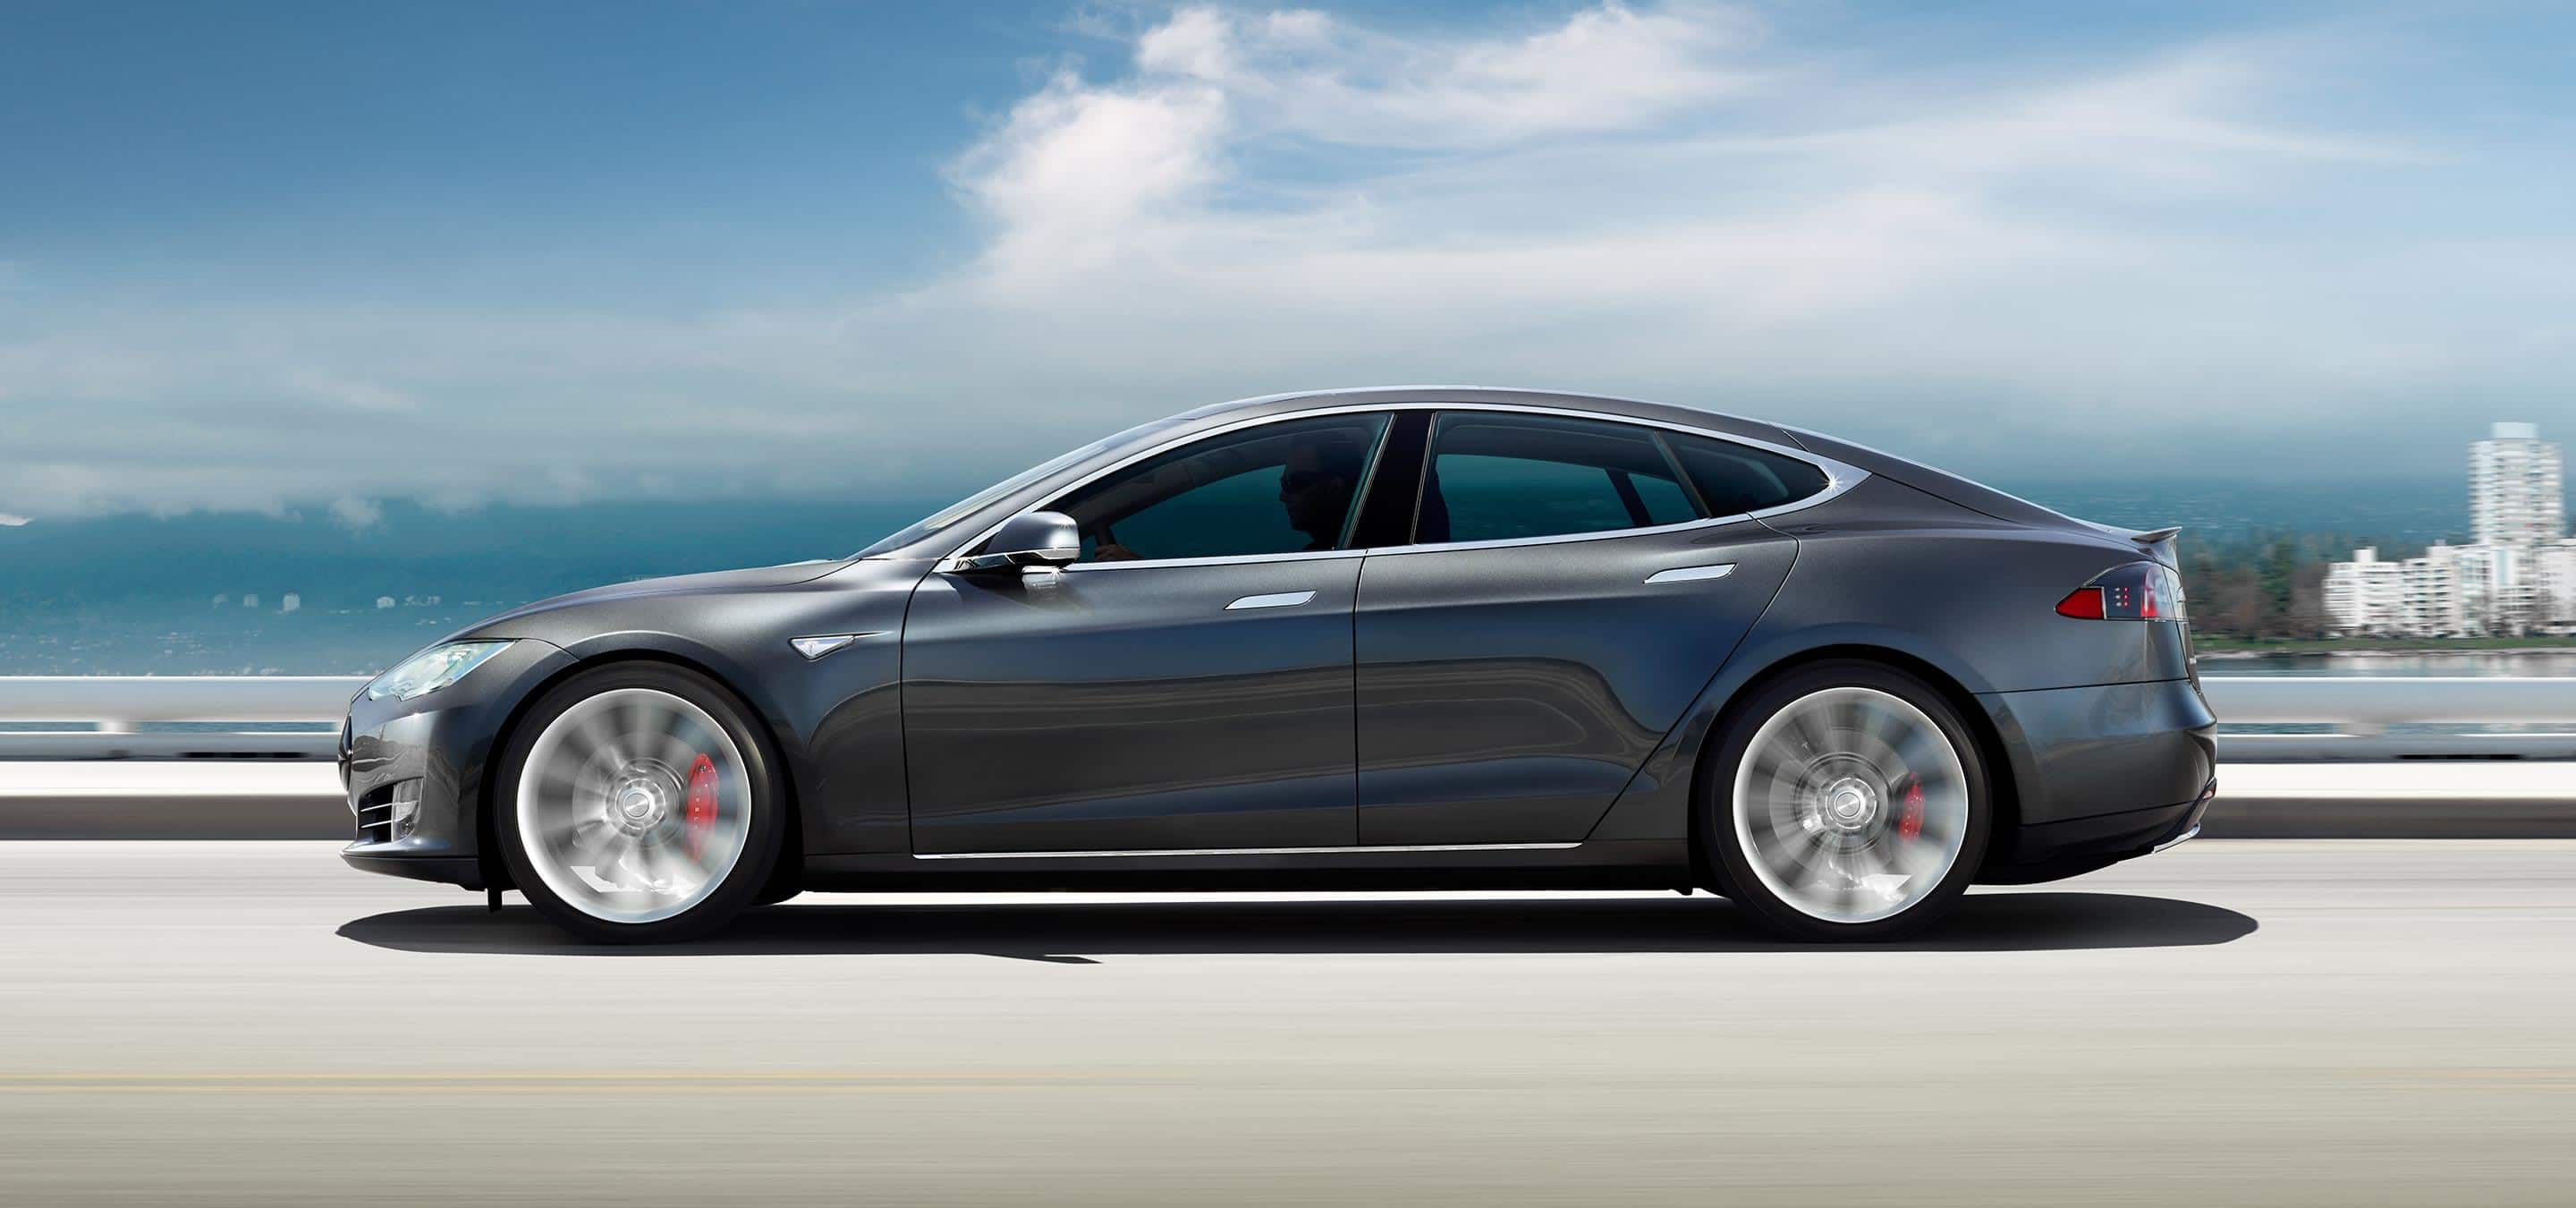 Elon Musk: With the Right Tires, a Tesla Could Travel 1,000+ ...